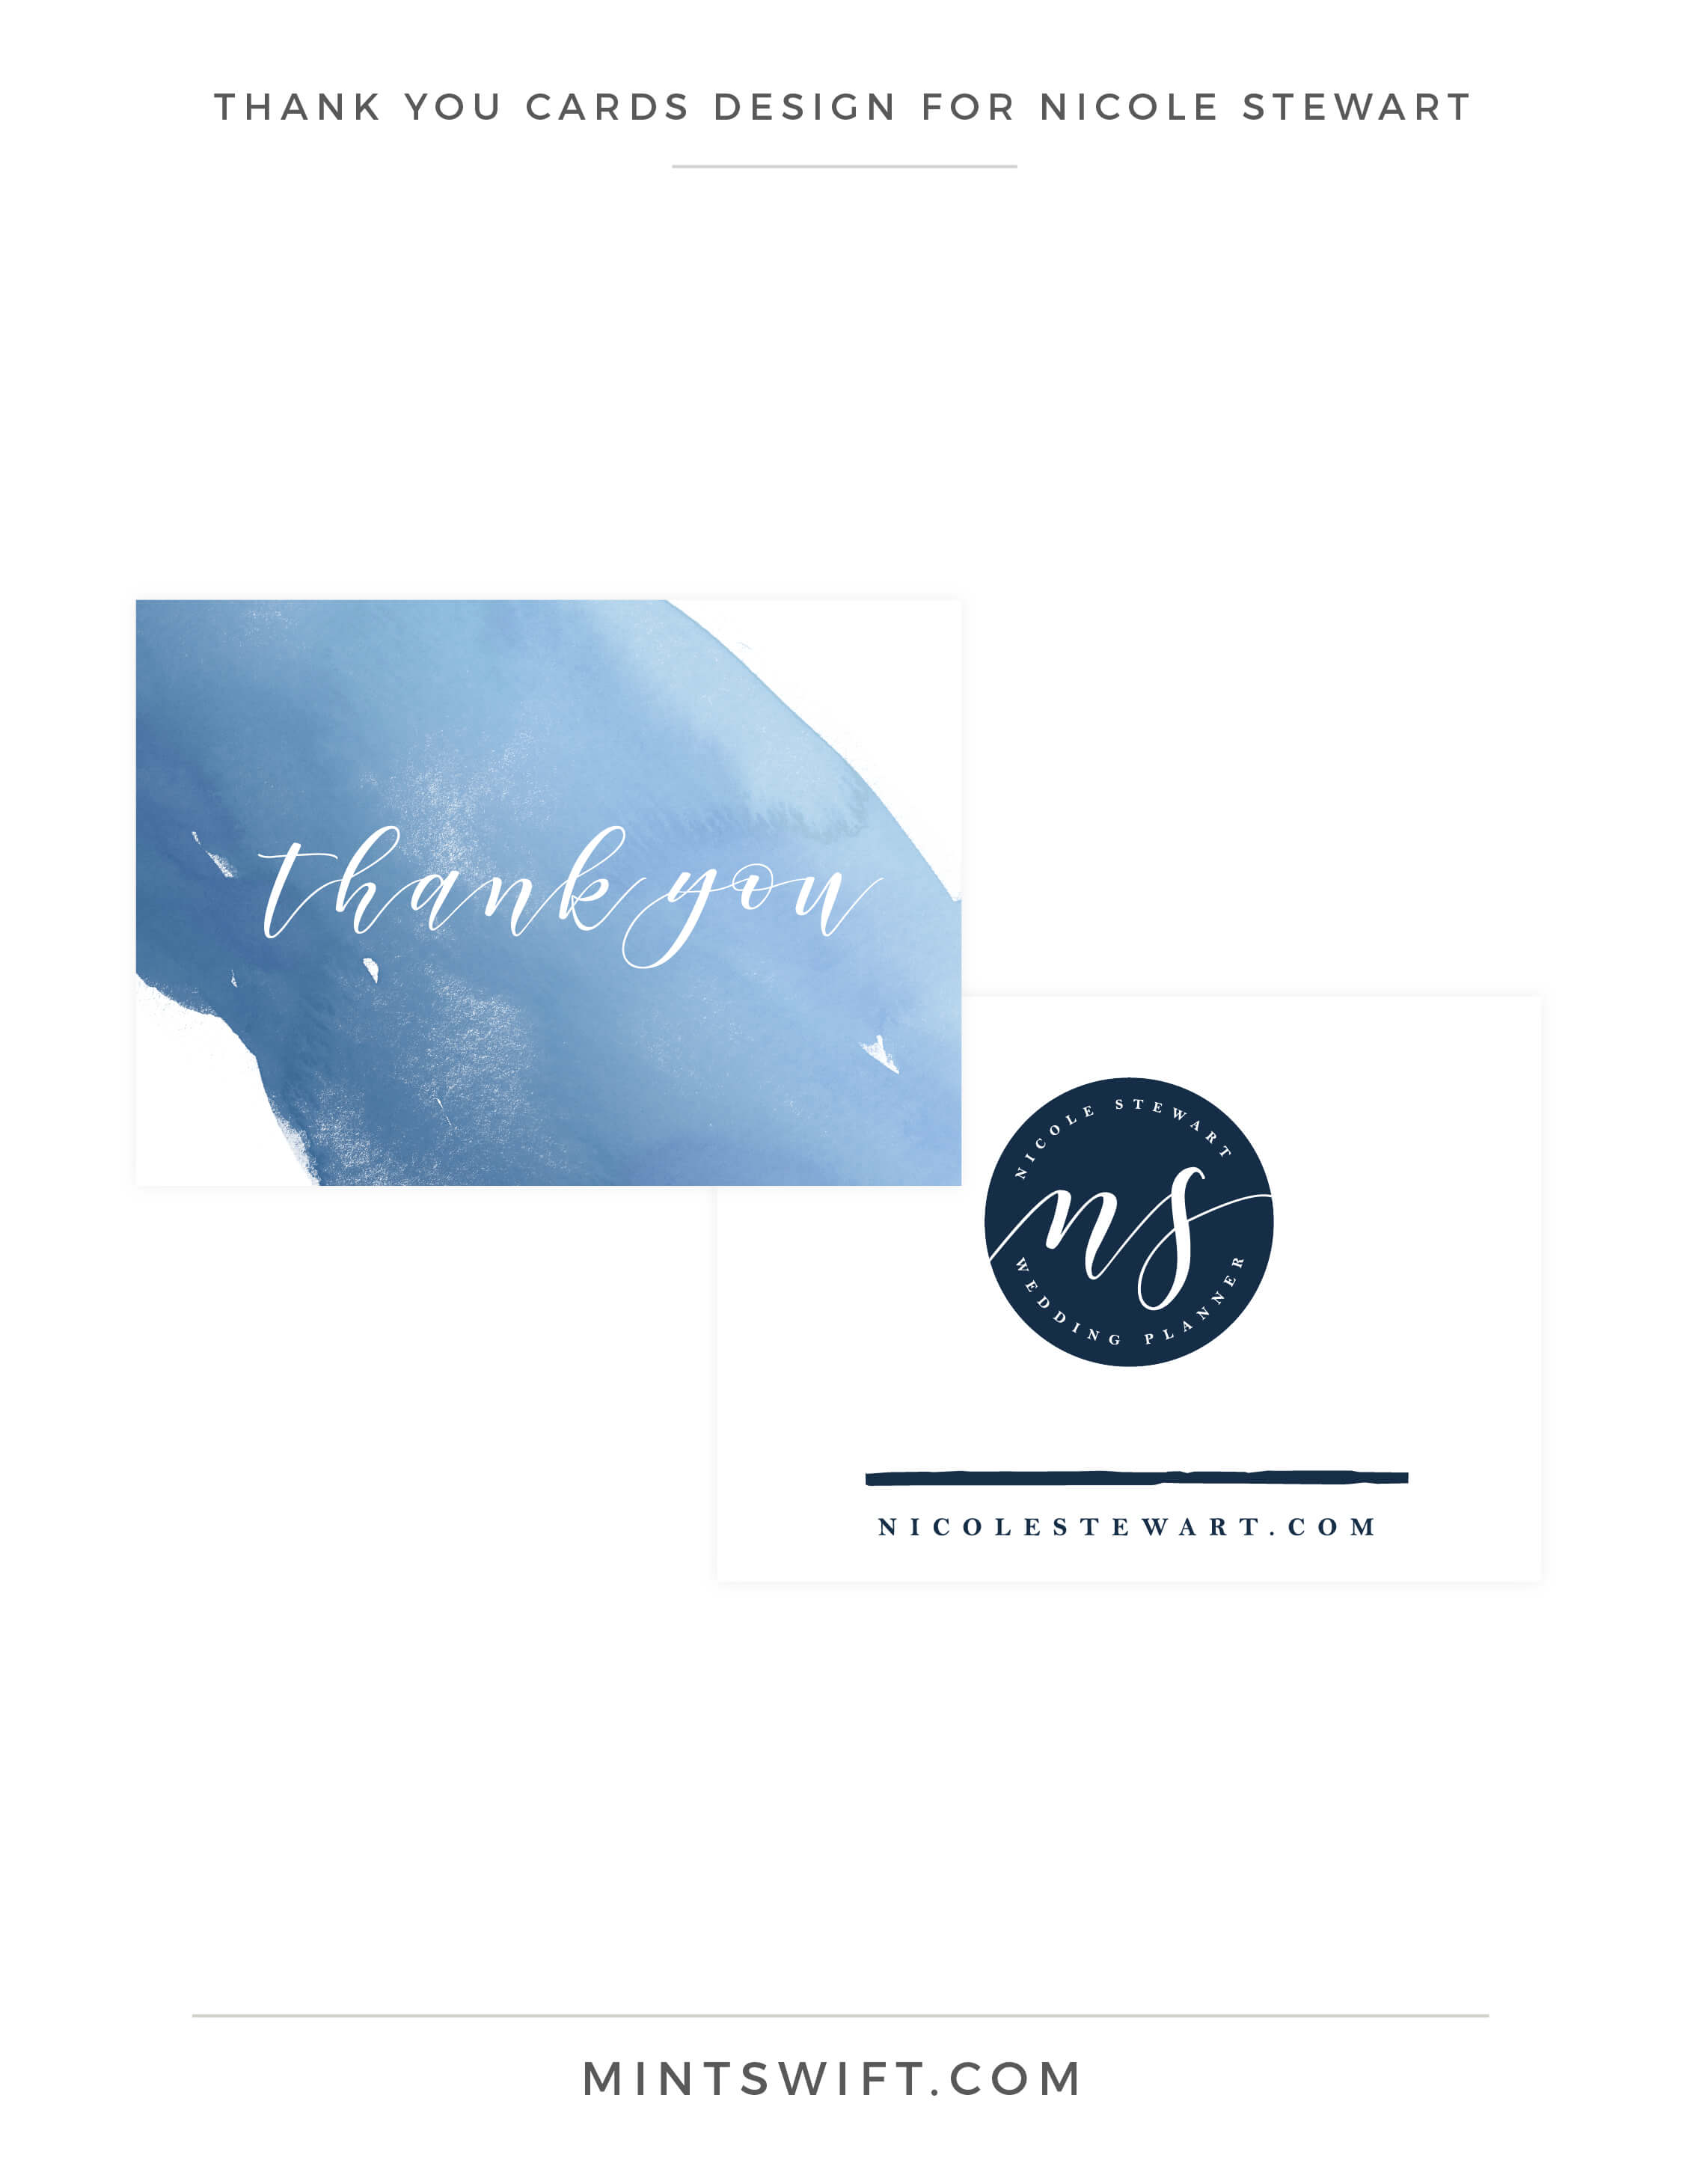 Nicole Stewart - Thank You Cards Design - Brand Design Package - MintSwift